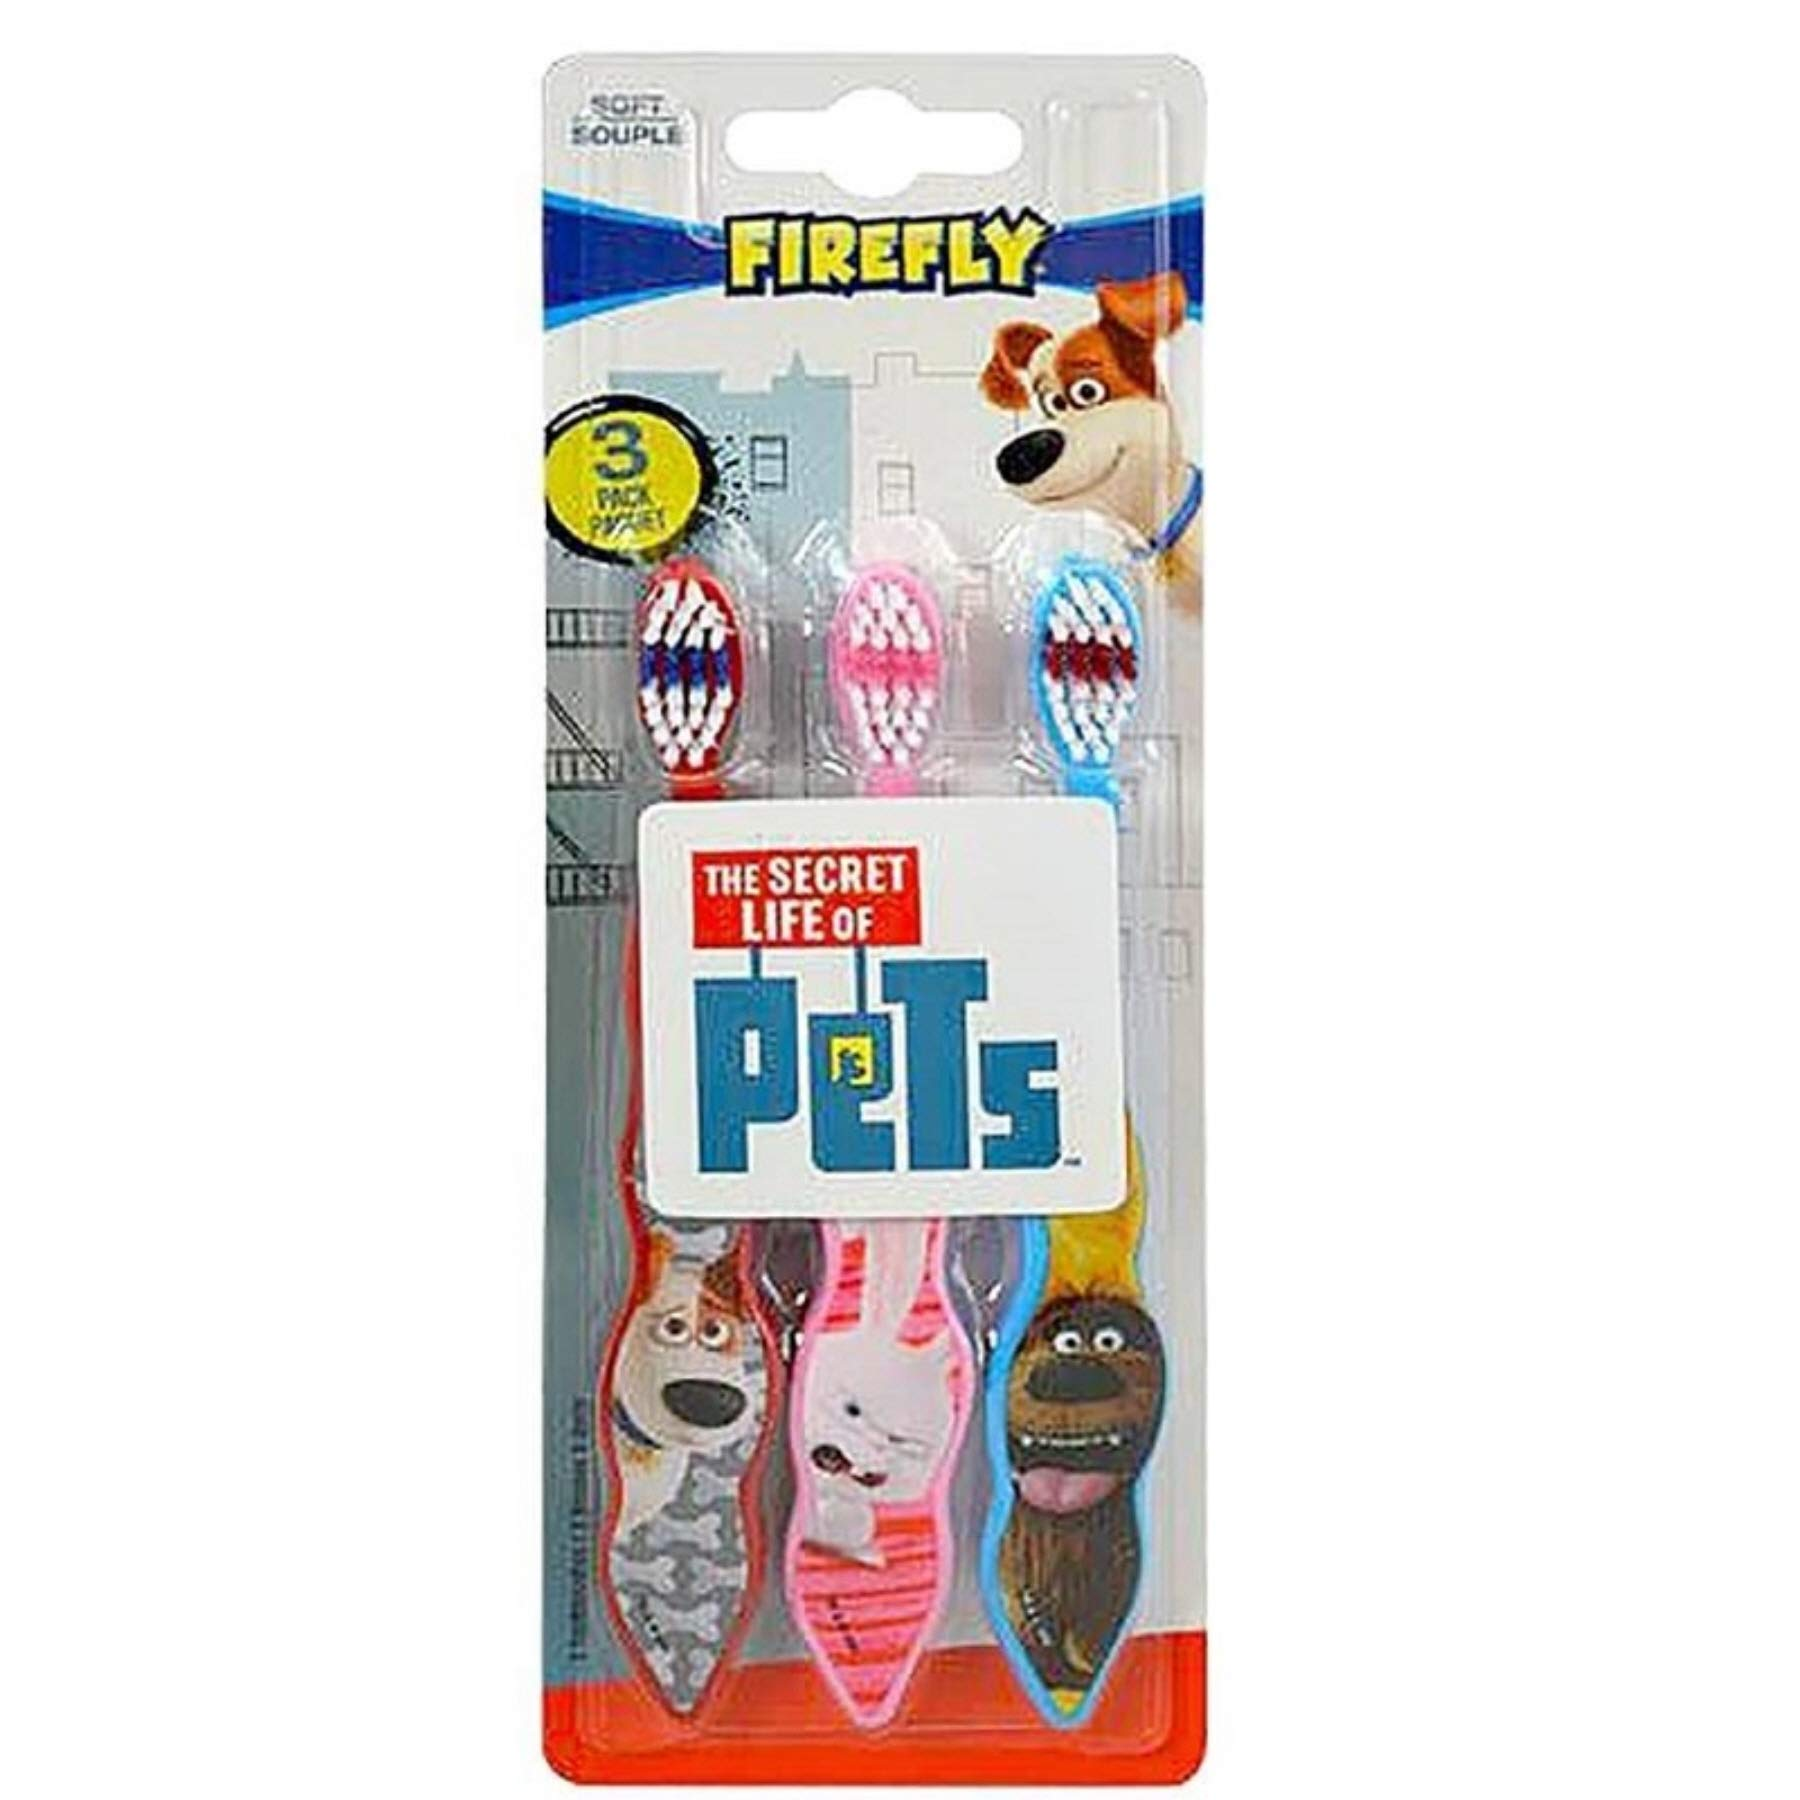 (Pack of 24, 72 Ct) Firefly Kids Toothbrush Soft The Secret Life of Pets 3-Pack Toothbrushes (Max,Snowball, Duke)